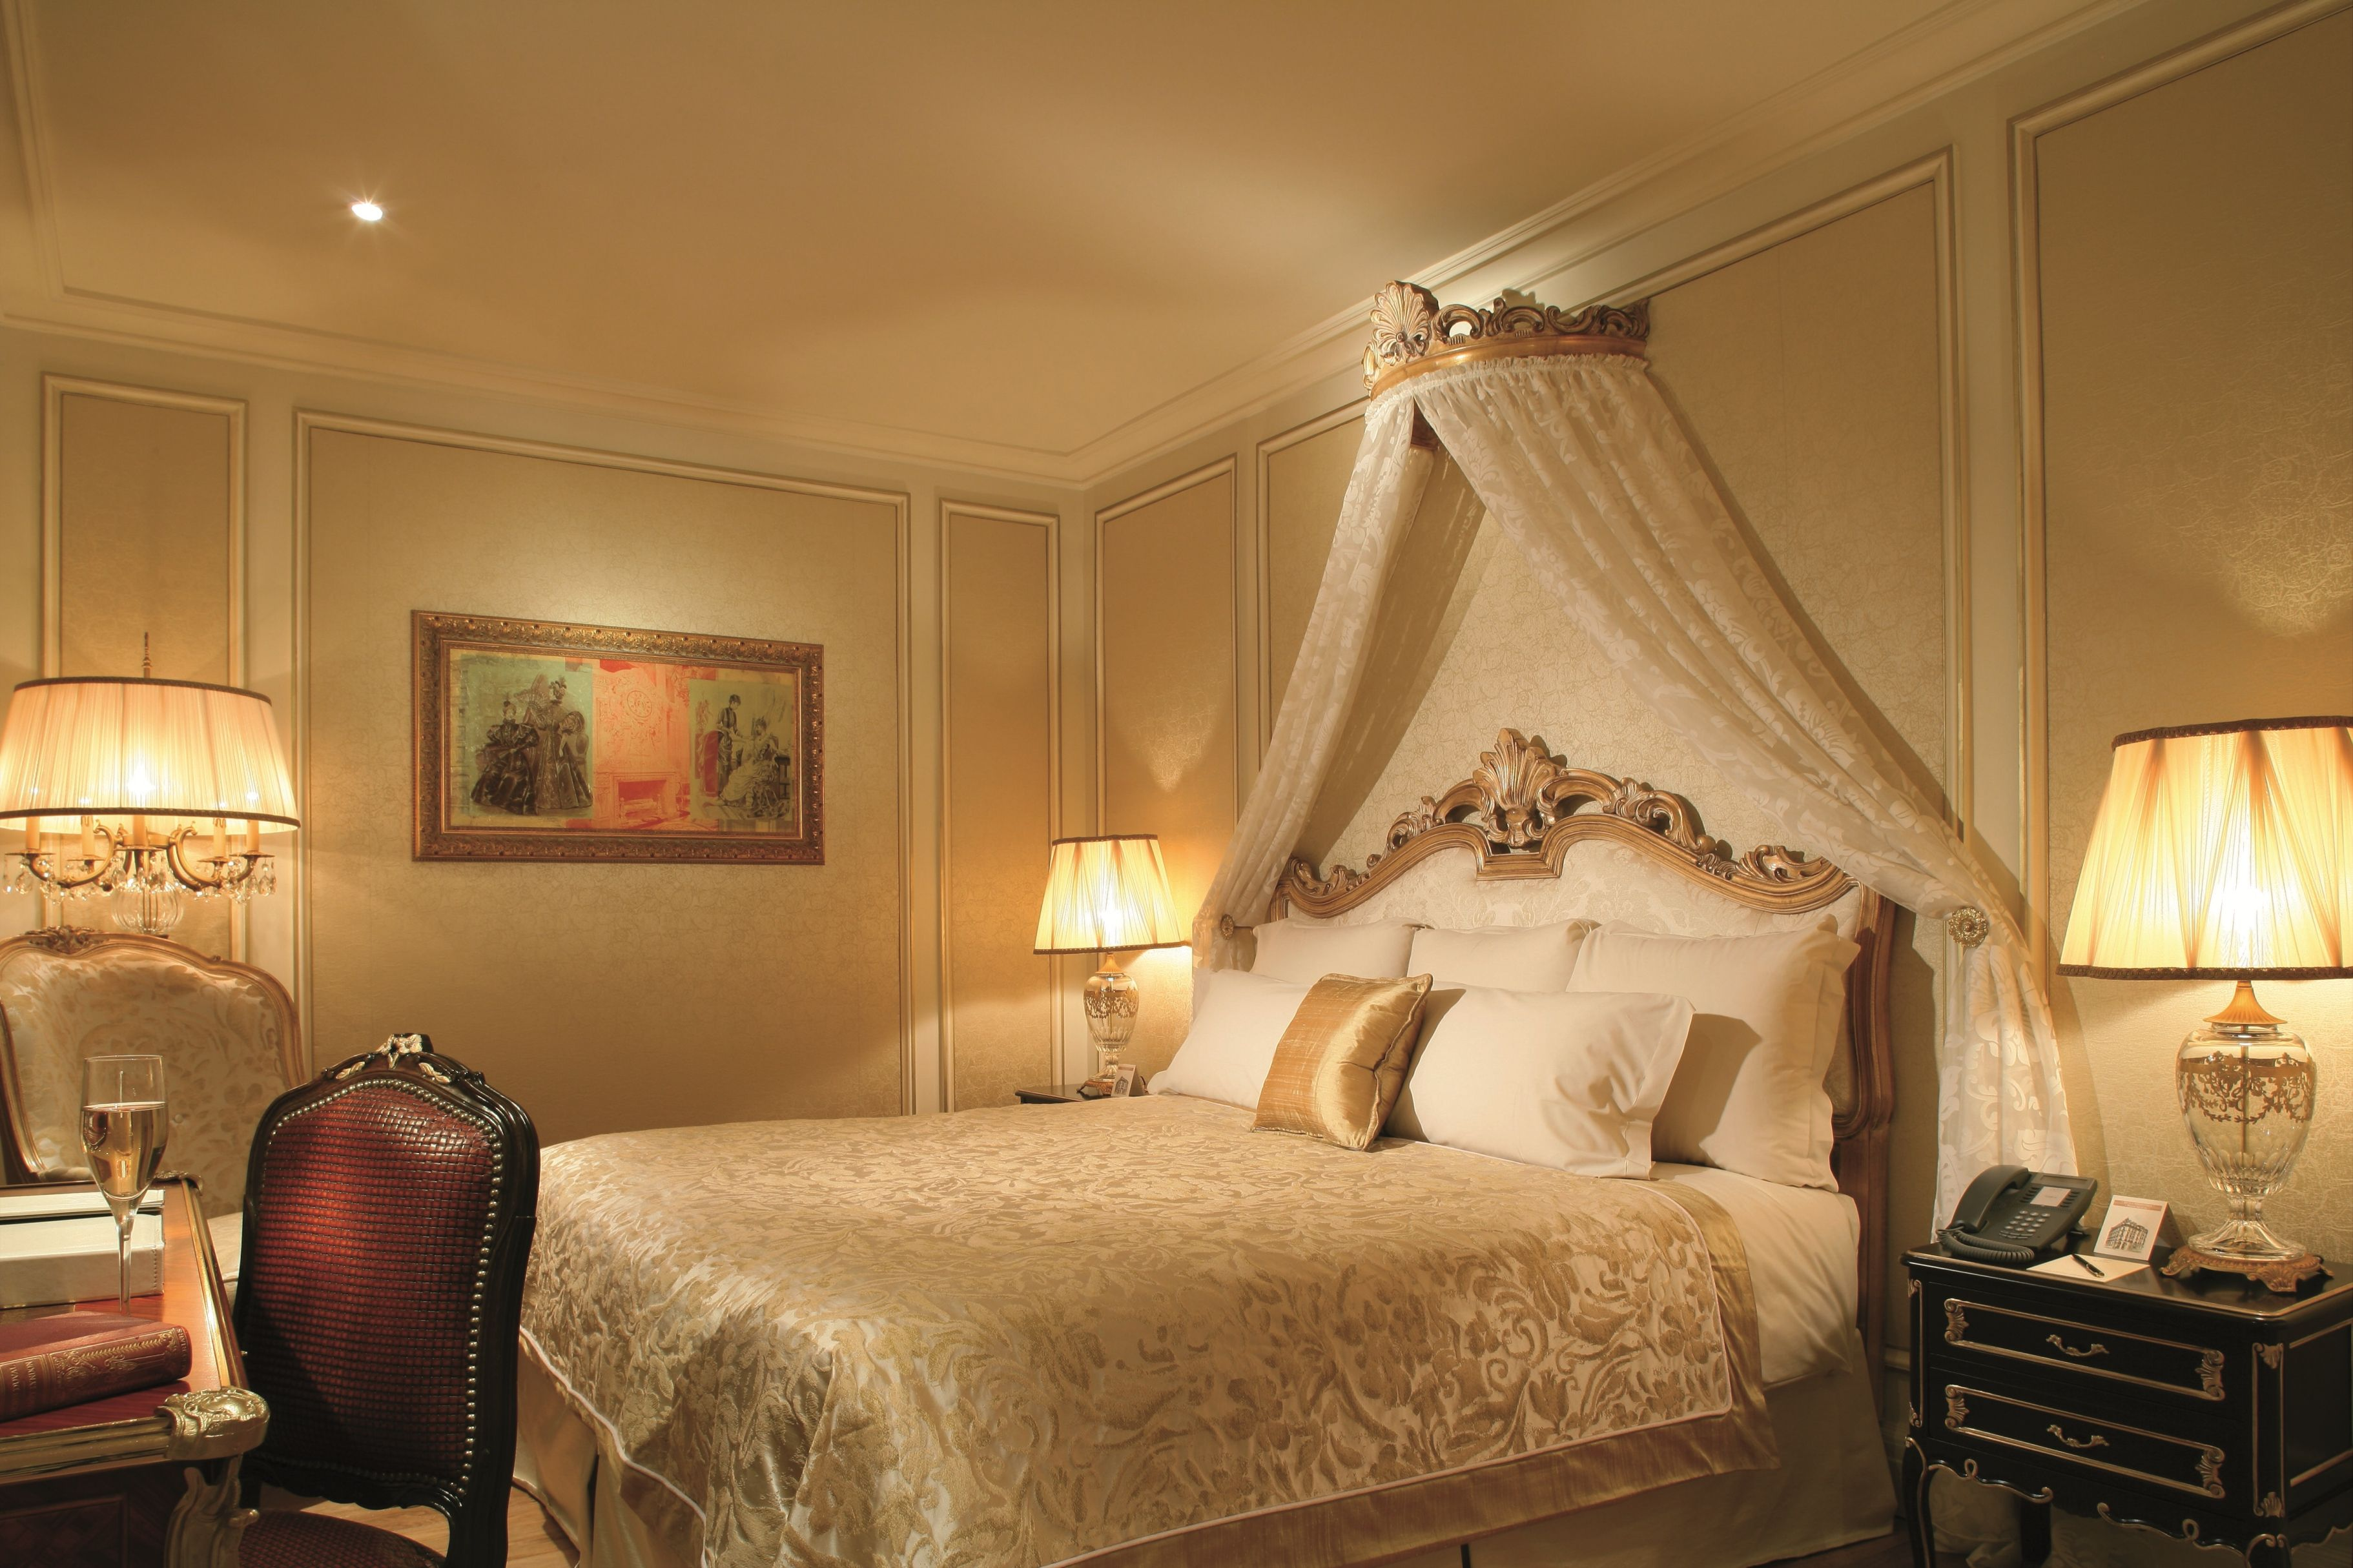 luxus hotel interieur paris angelo cappelini, presidential bedroom for a dream honeymoon at the 5-star hotel, Design ideen